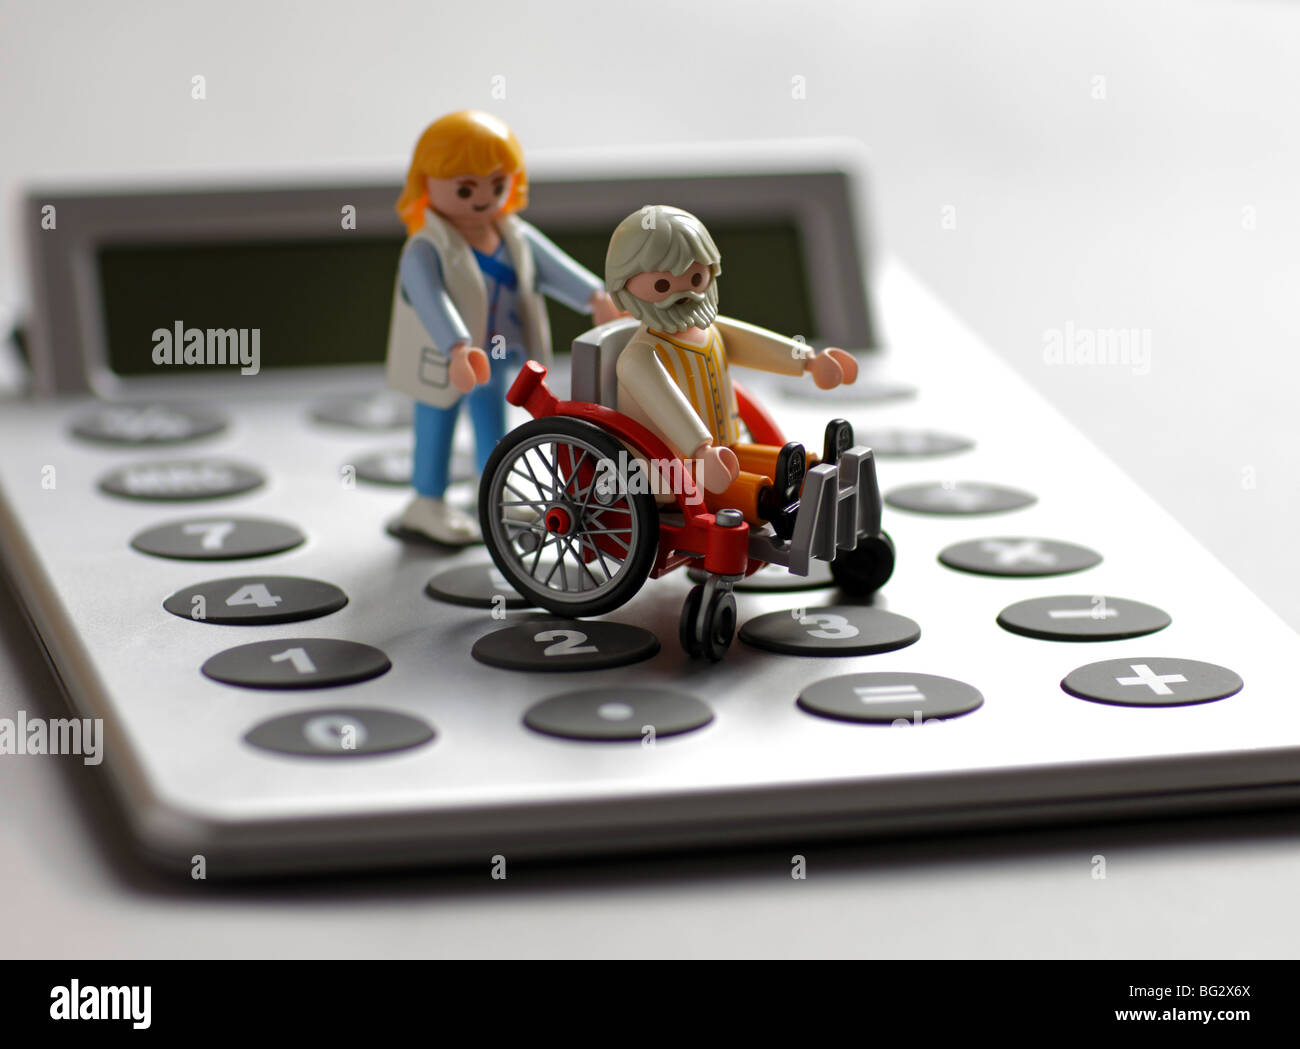 Playmobil toys on a calculater . - Stock Image